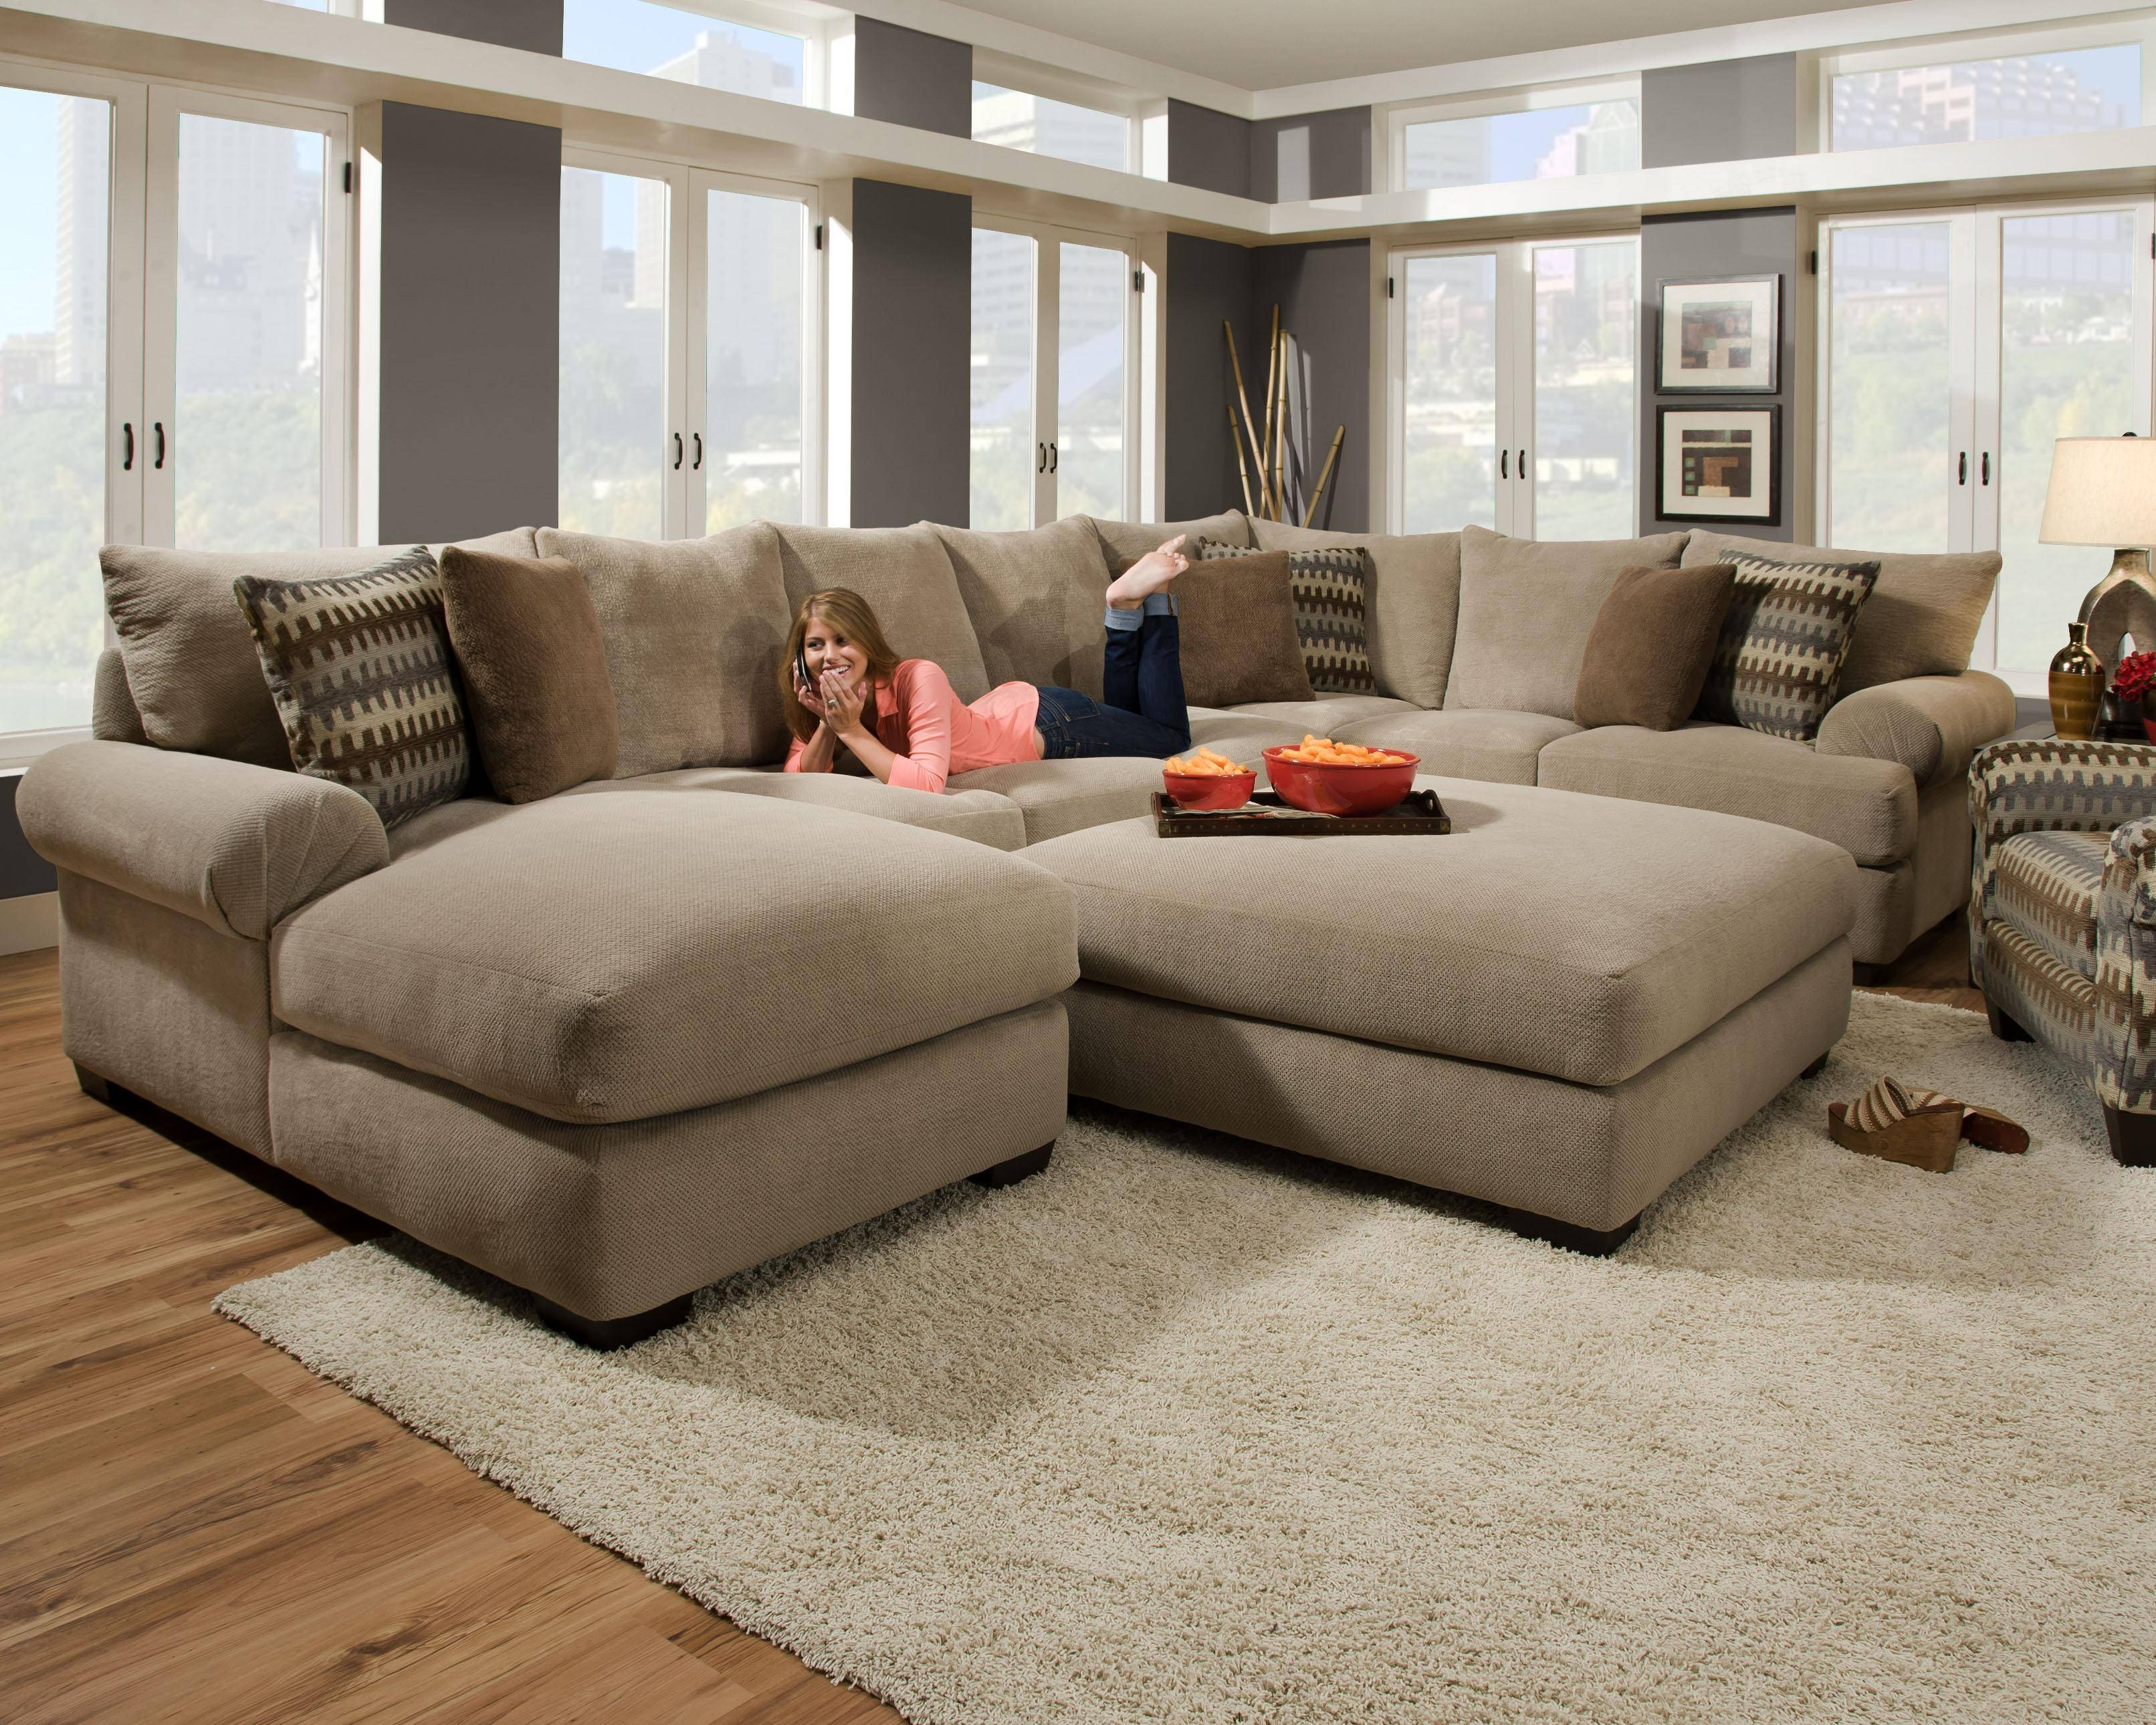 Furniture: Interesting Living Room Interior Using Large Sectional intended for Large Sofa Sectionals (Image 10 of 25)